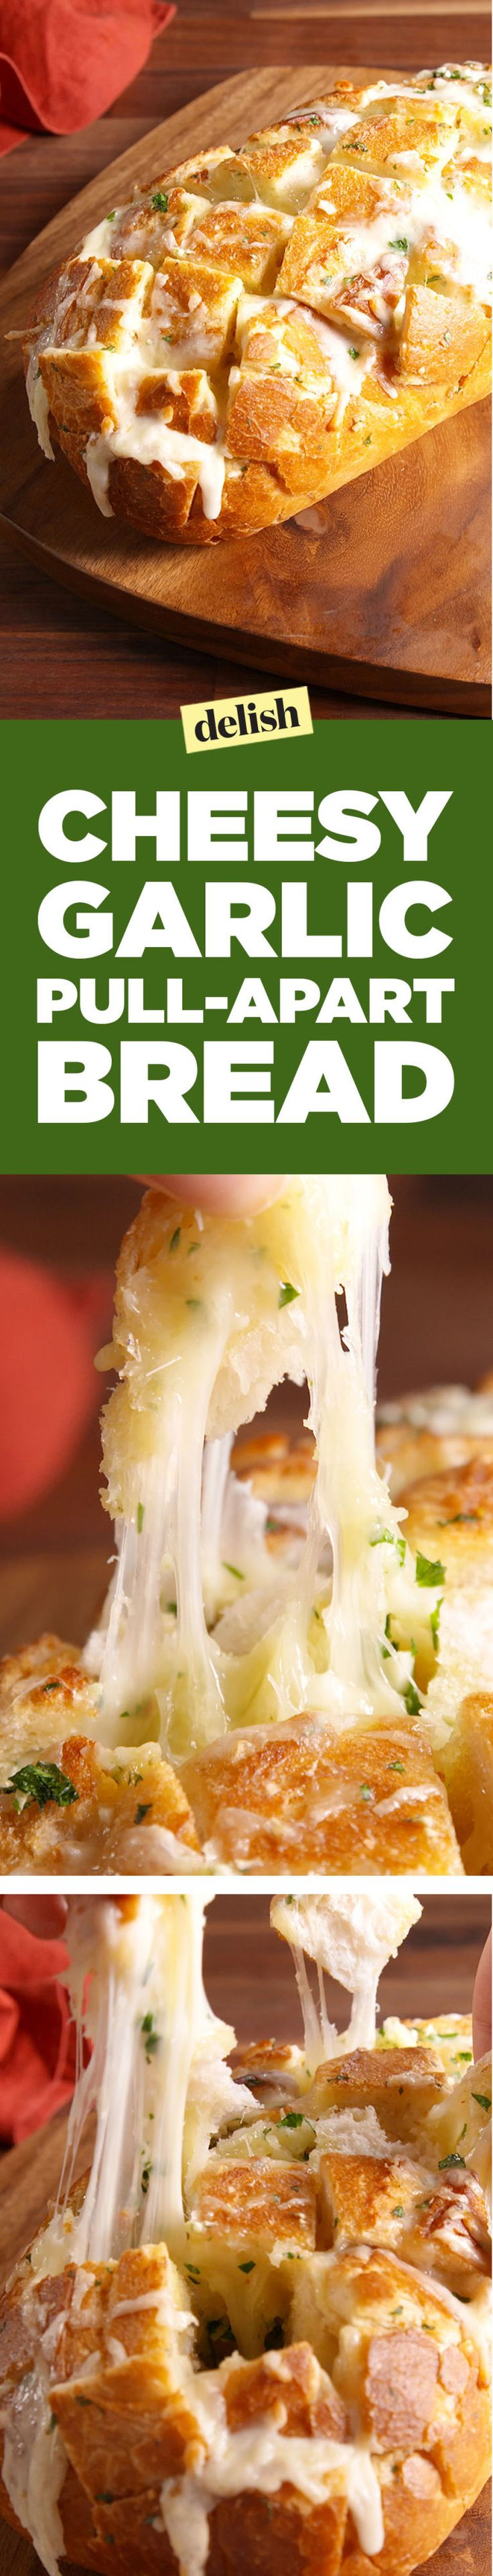 Here's How To Make A Cheesy Bread Your Friends Will Fight Over